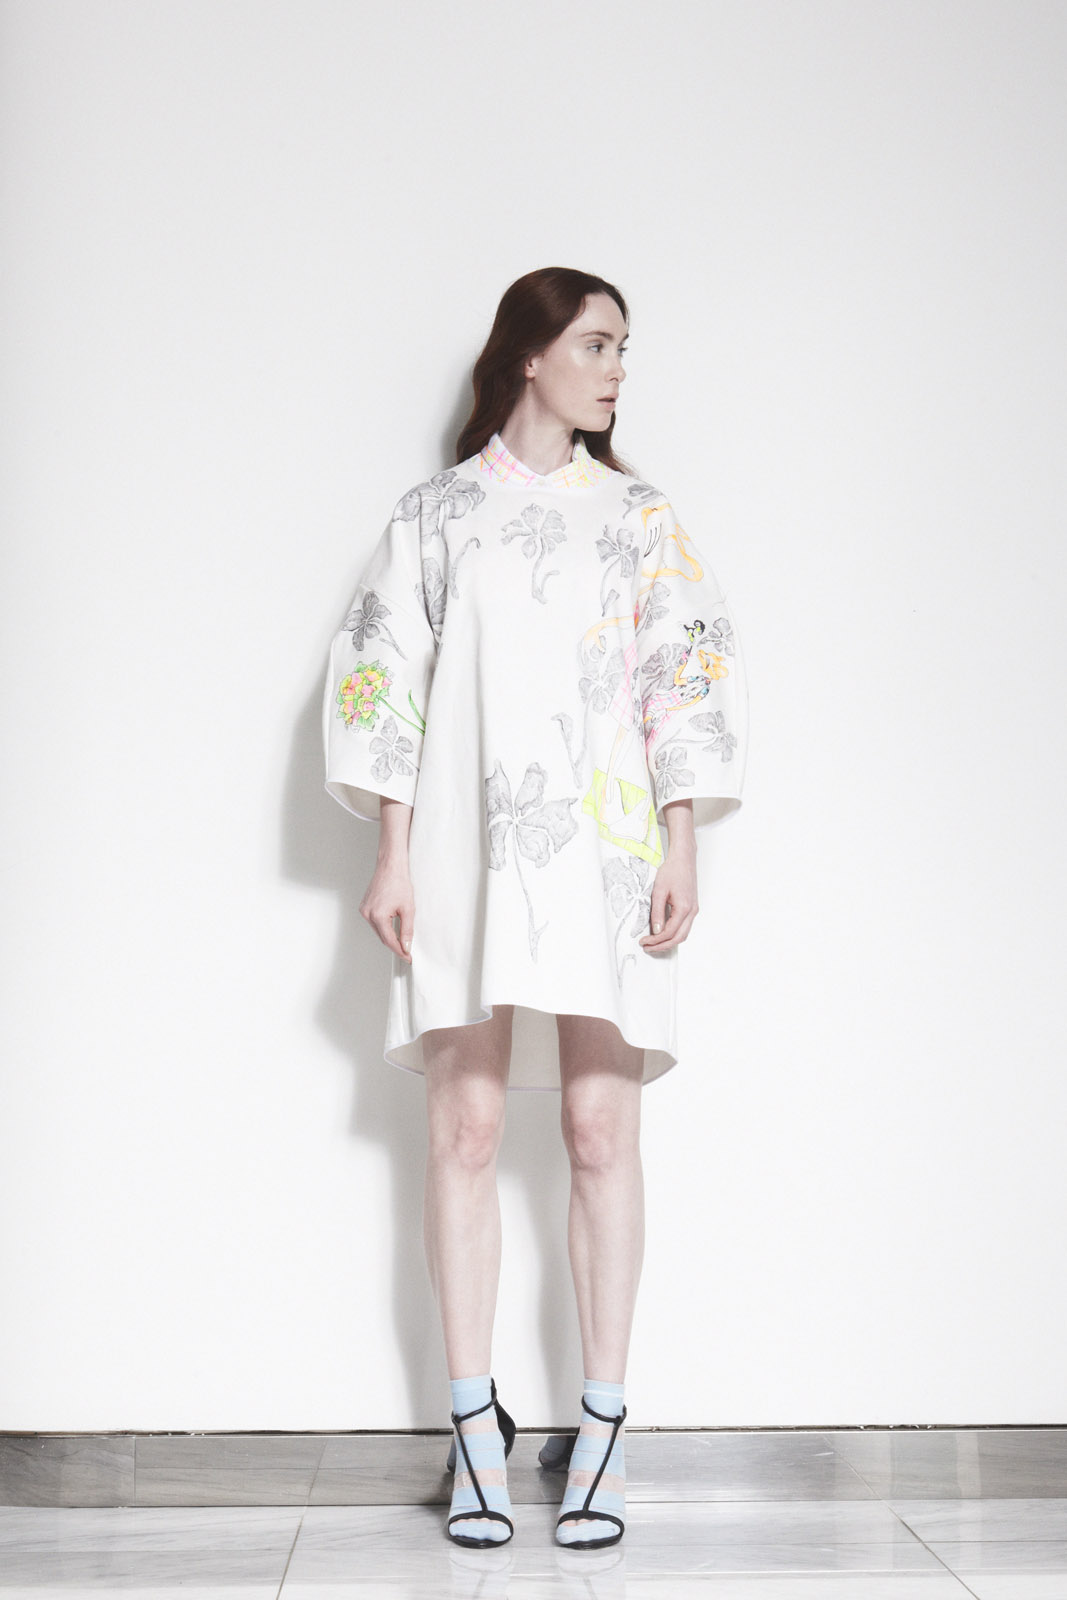 David Longshaw 2015 Spring Summer Collection